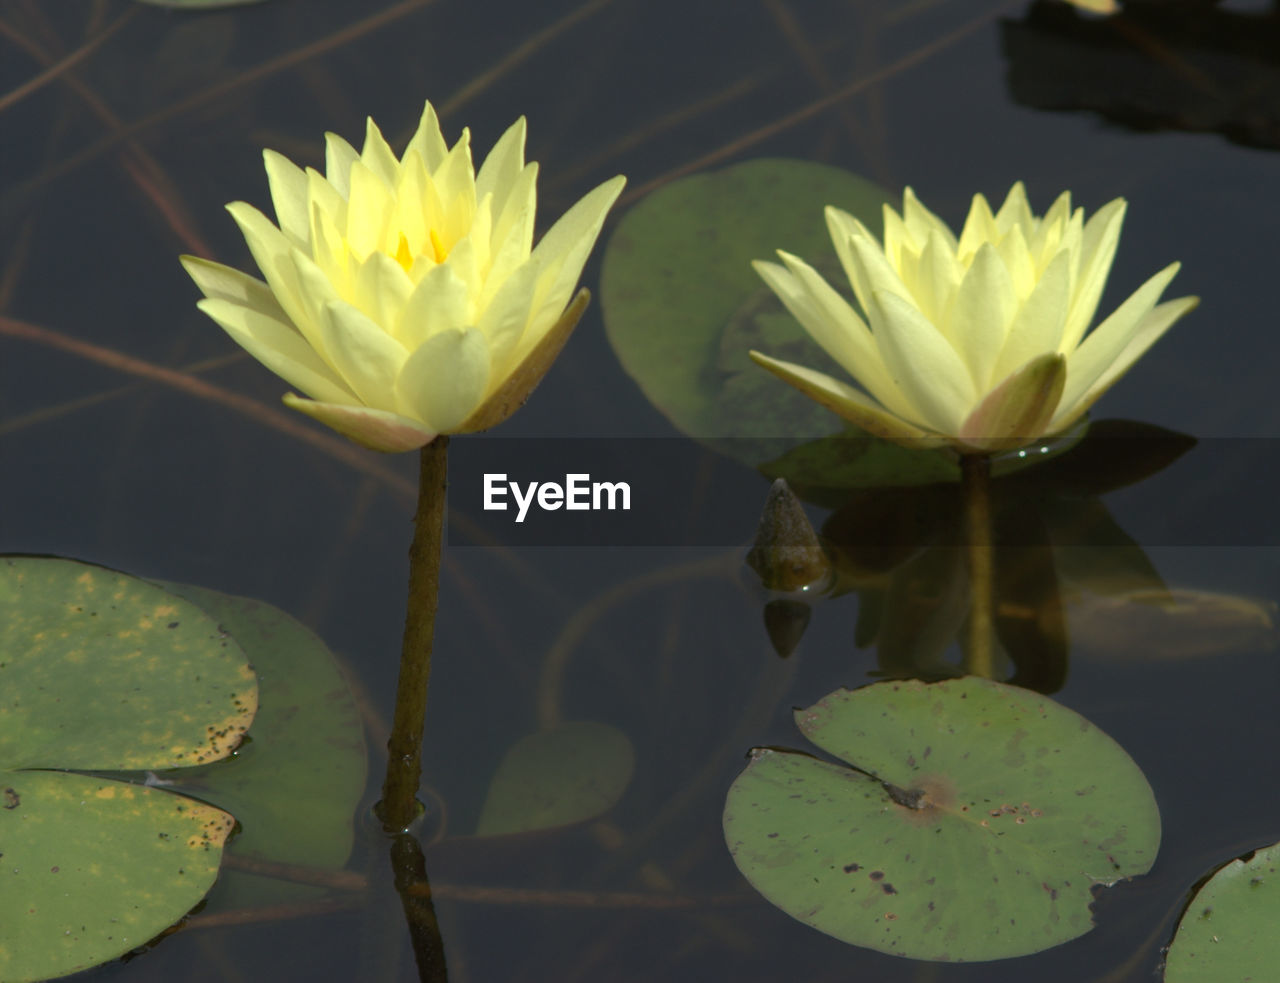 flower, beauty in nature, fragility, nature, water lily, freshness, leaf, growth, petal, water, plant, lotus water lily, floating on water, no people, lily pad, flower head, close-up, yellow, lake, green color, day, outdoors, lotus